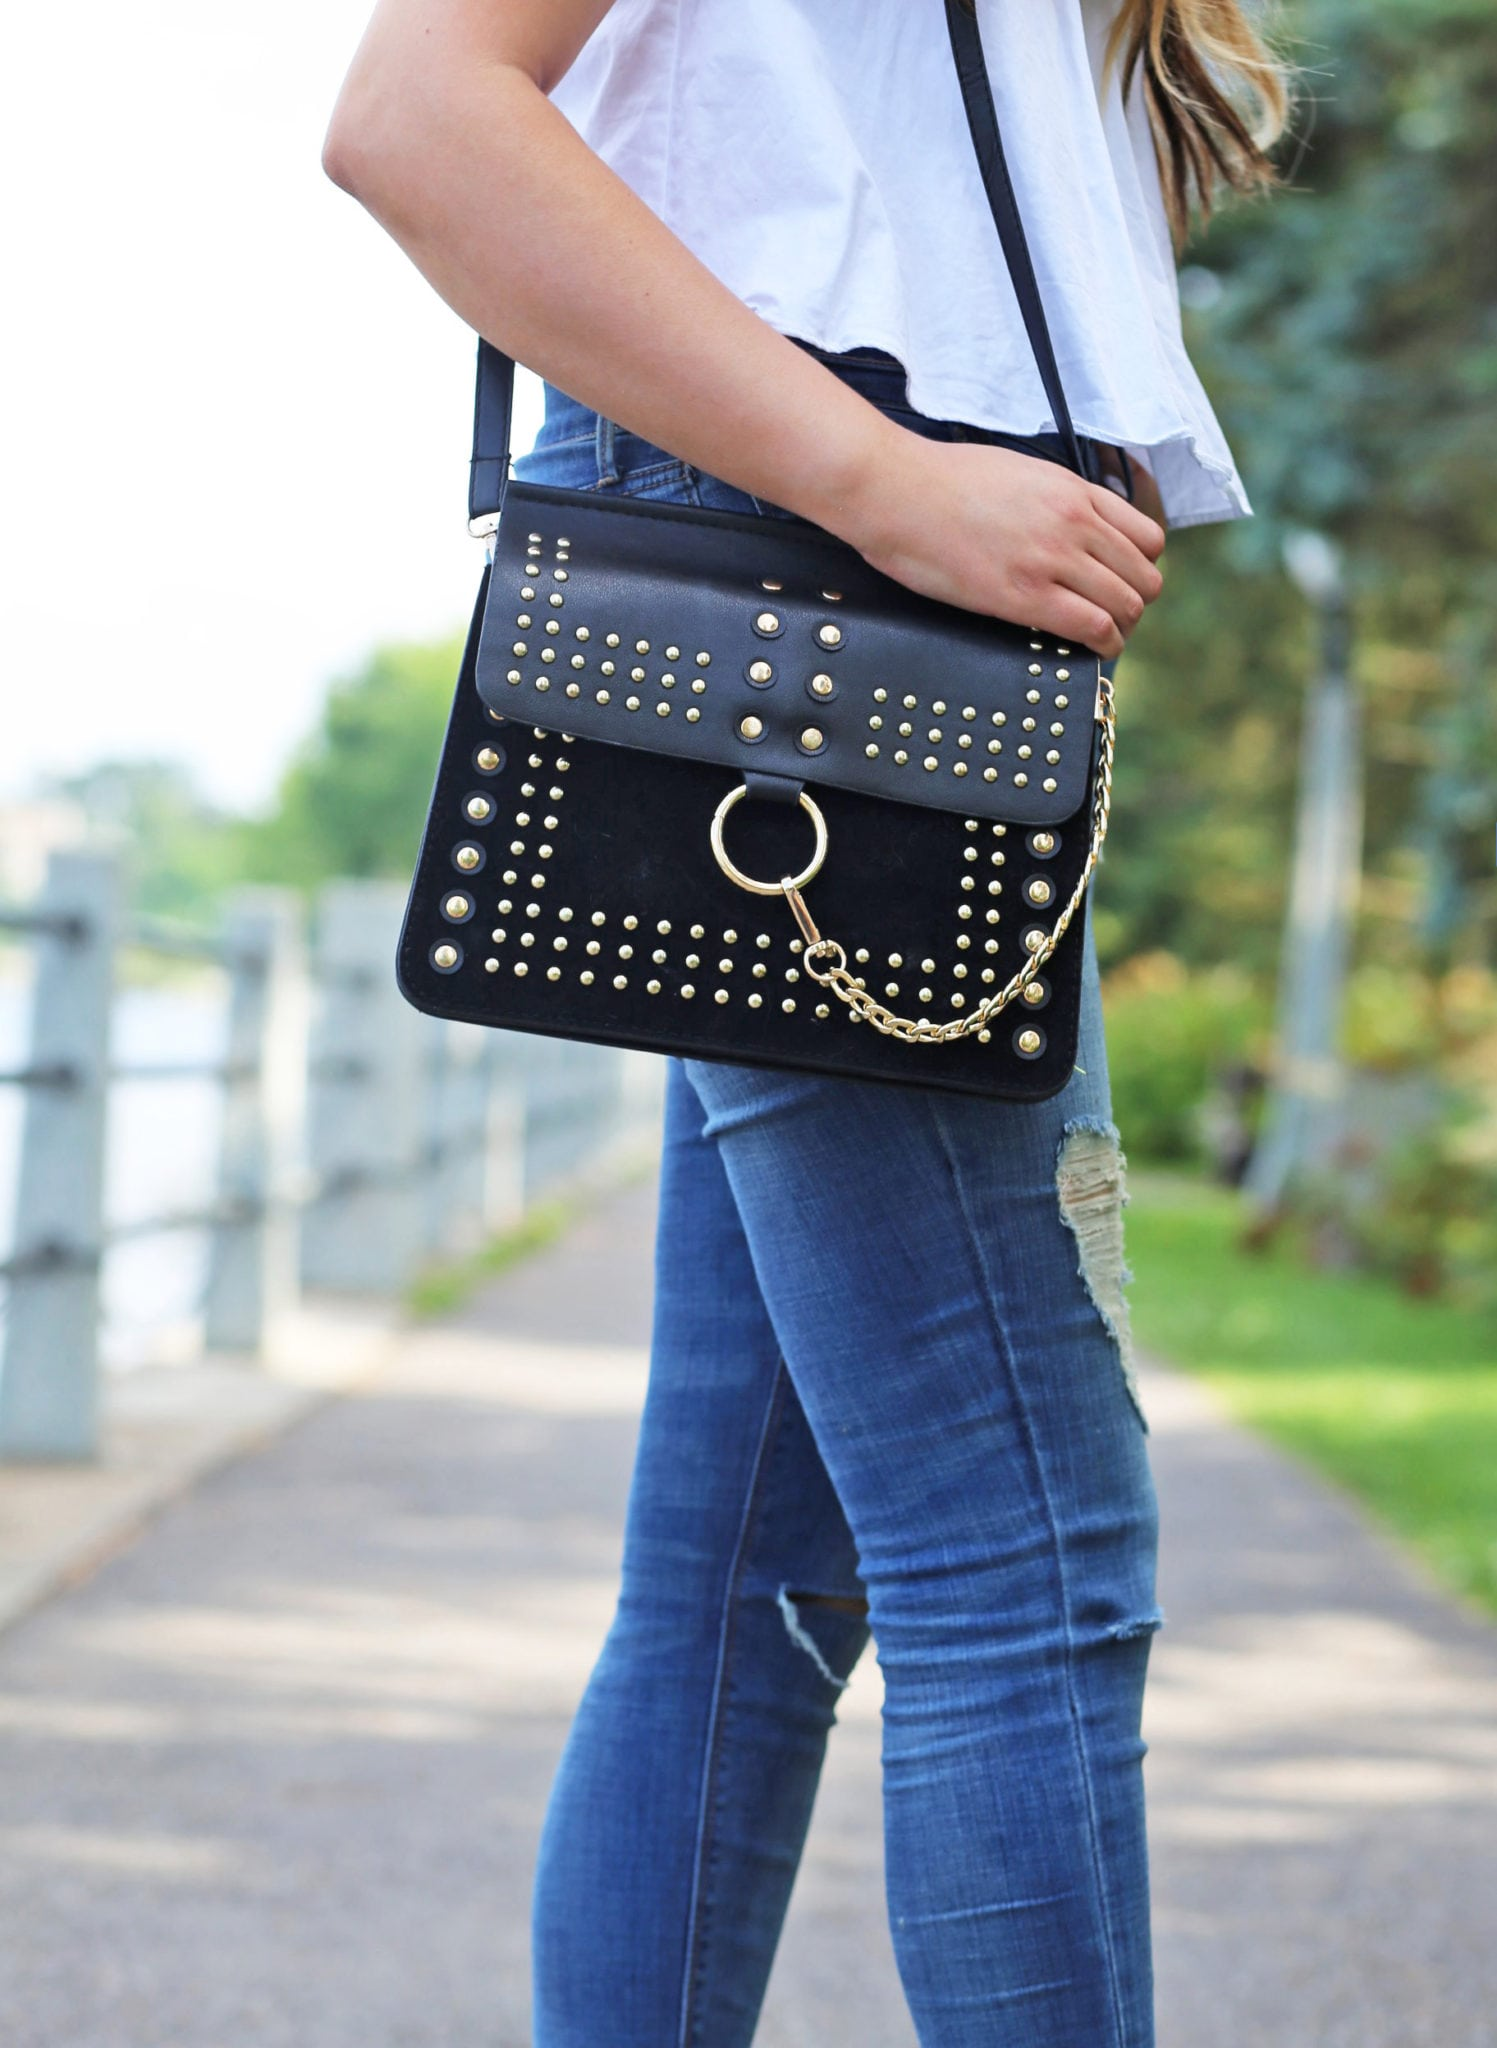 11 Chloe Designer Bag Dupes by popular Orlando fashion blogger Mash Elle